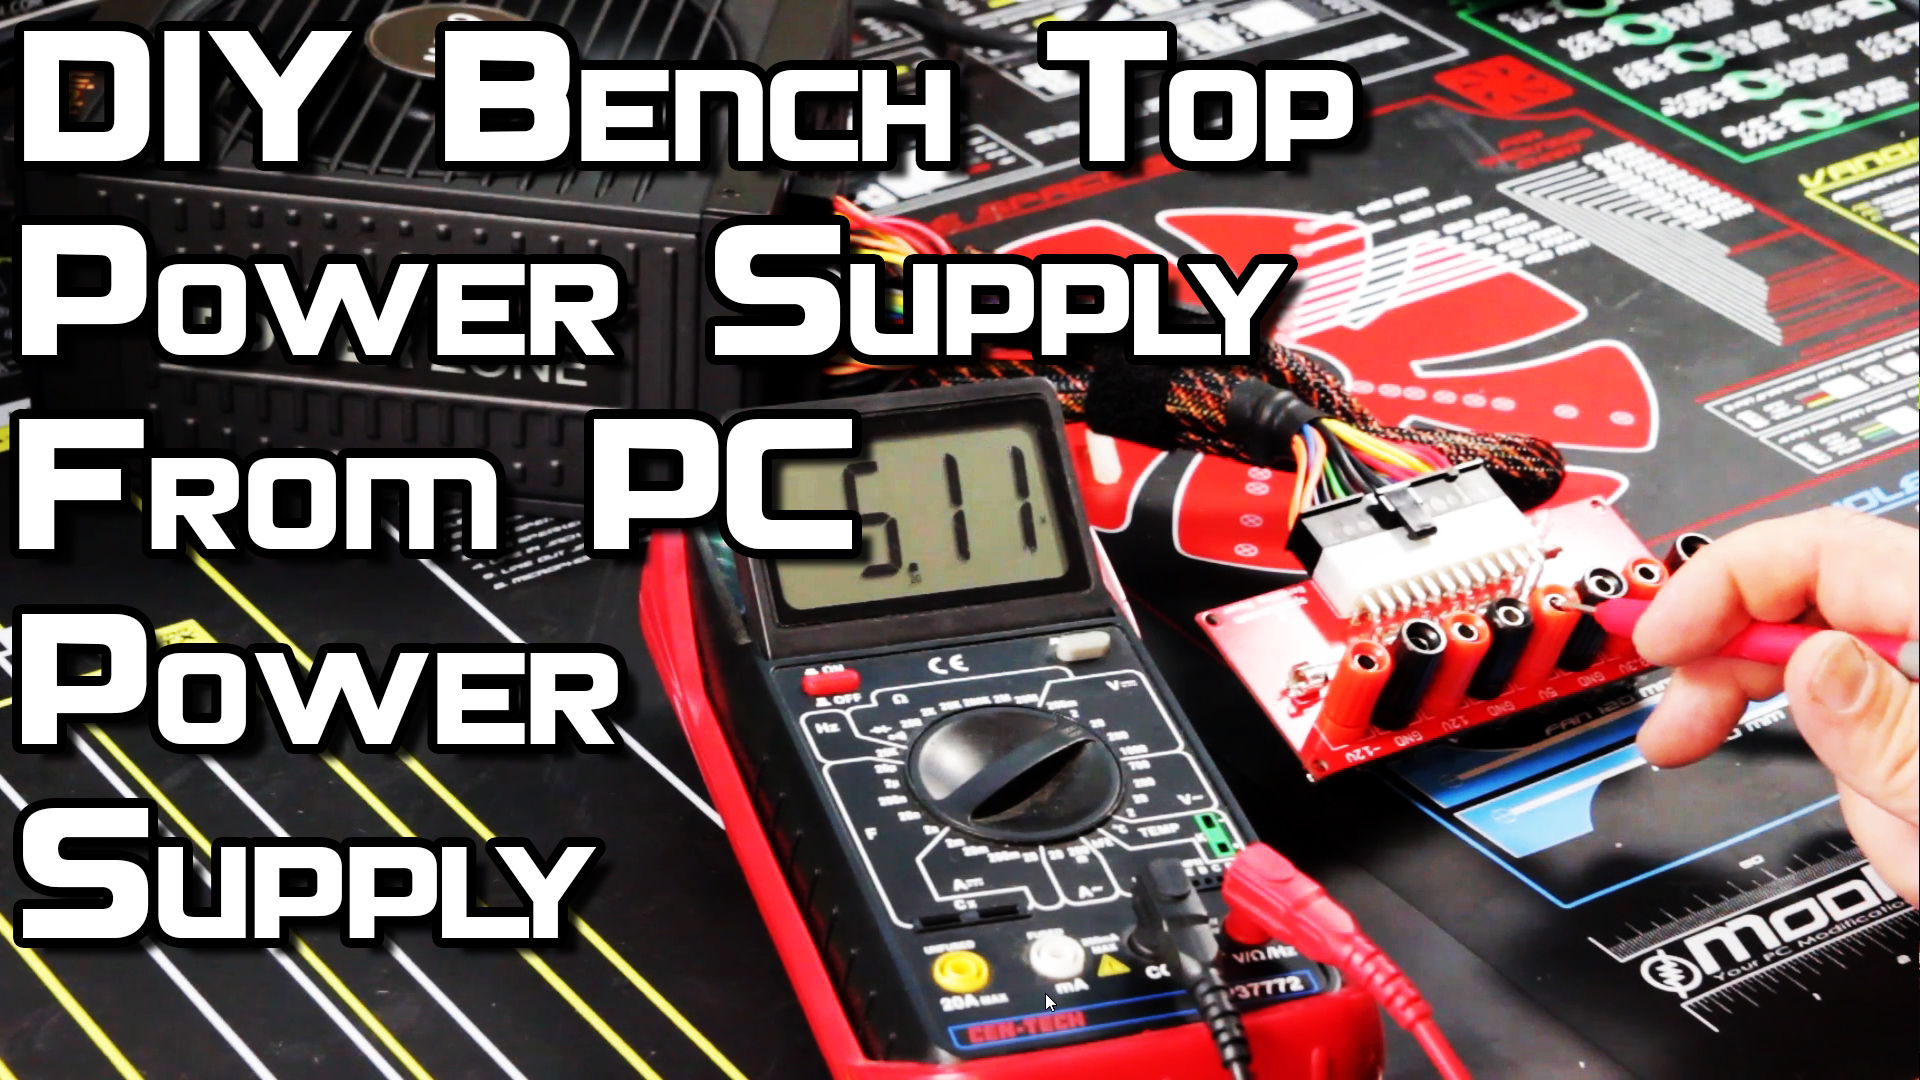 DIY benchtop power supply using a BeQuiet PC PSU.